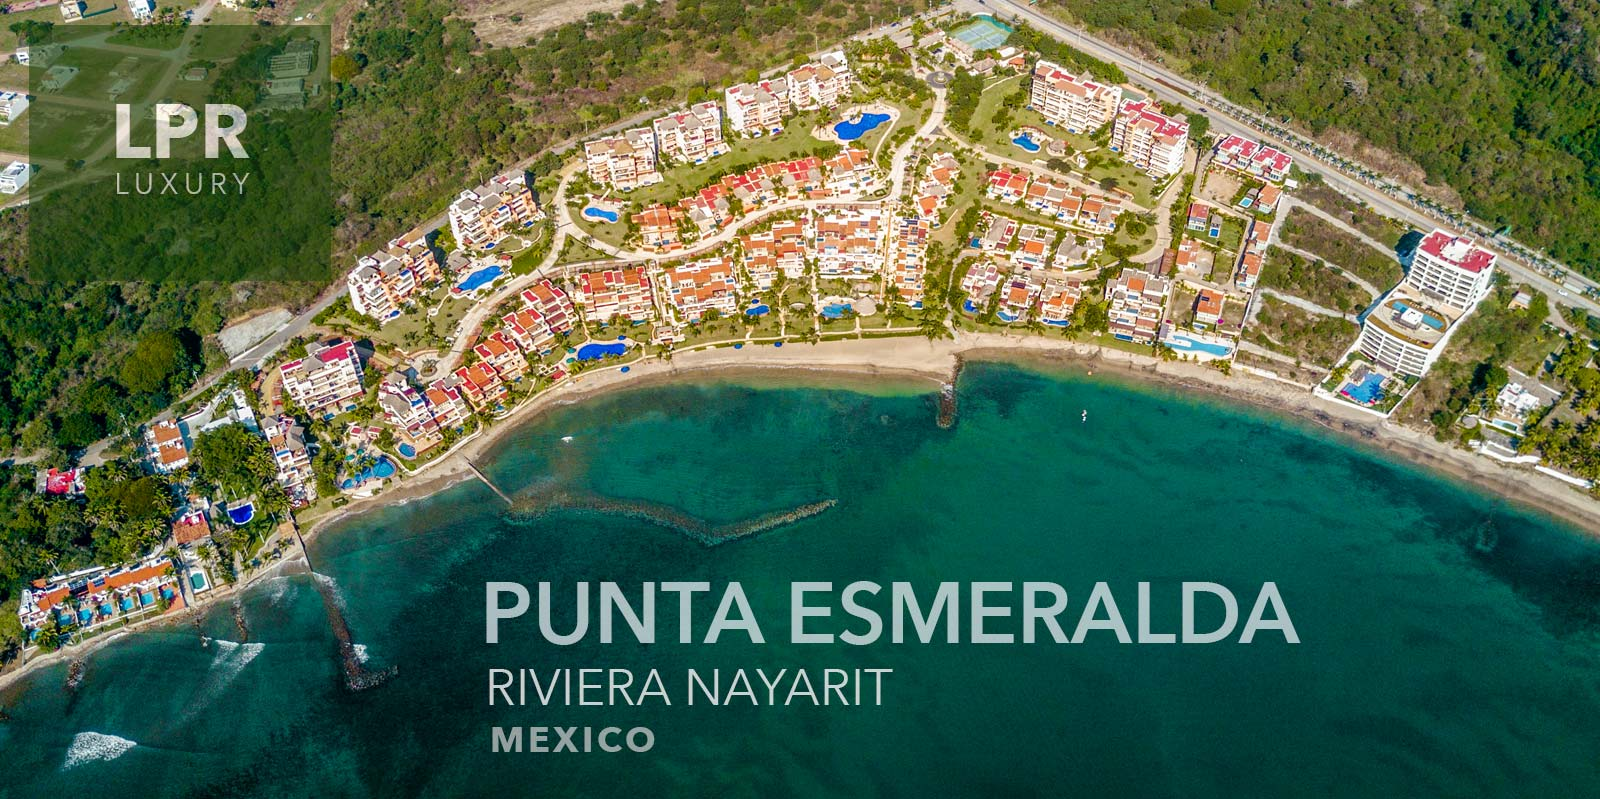 Punta Esmeralda - Punta de Mita Luxury beachfront vacation rental villas for sale in La Cruz de Huanacaxtle, Punta de Mita, Riviera Nayarit, North shore Puerto Vallarta, Mexico